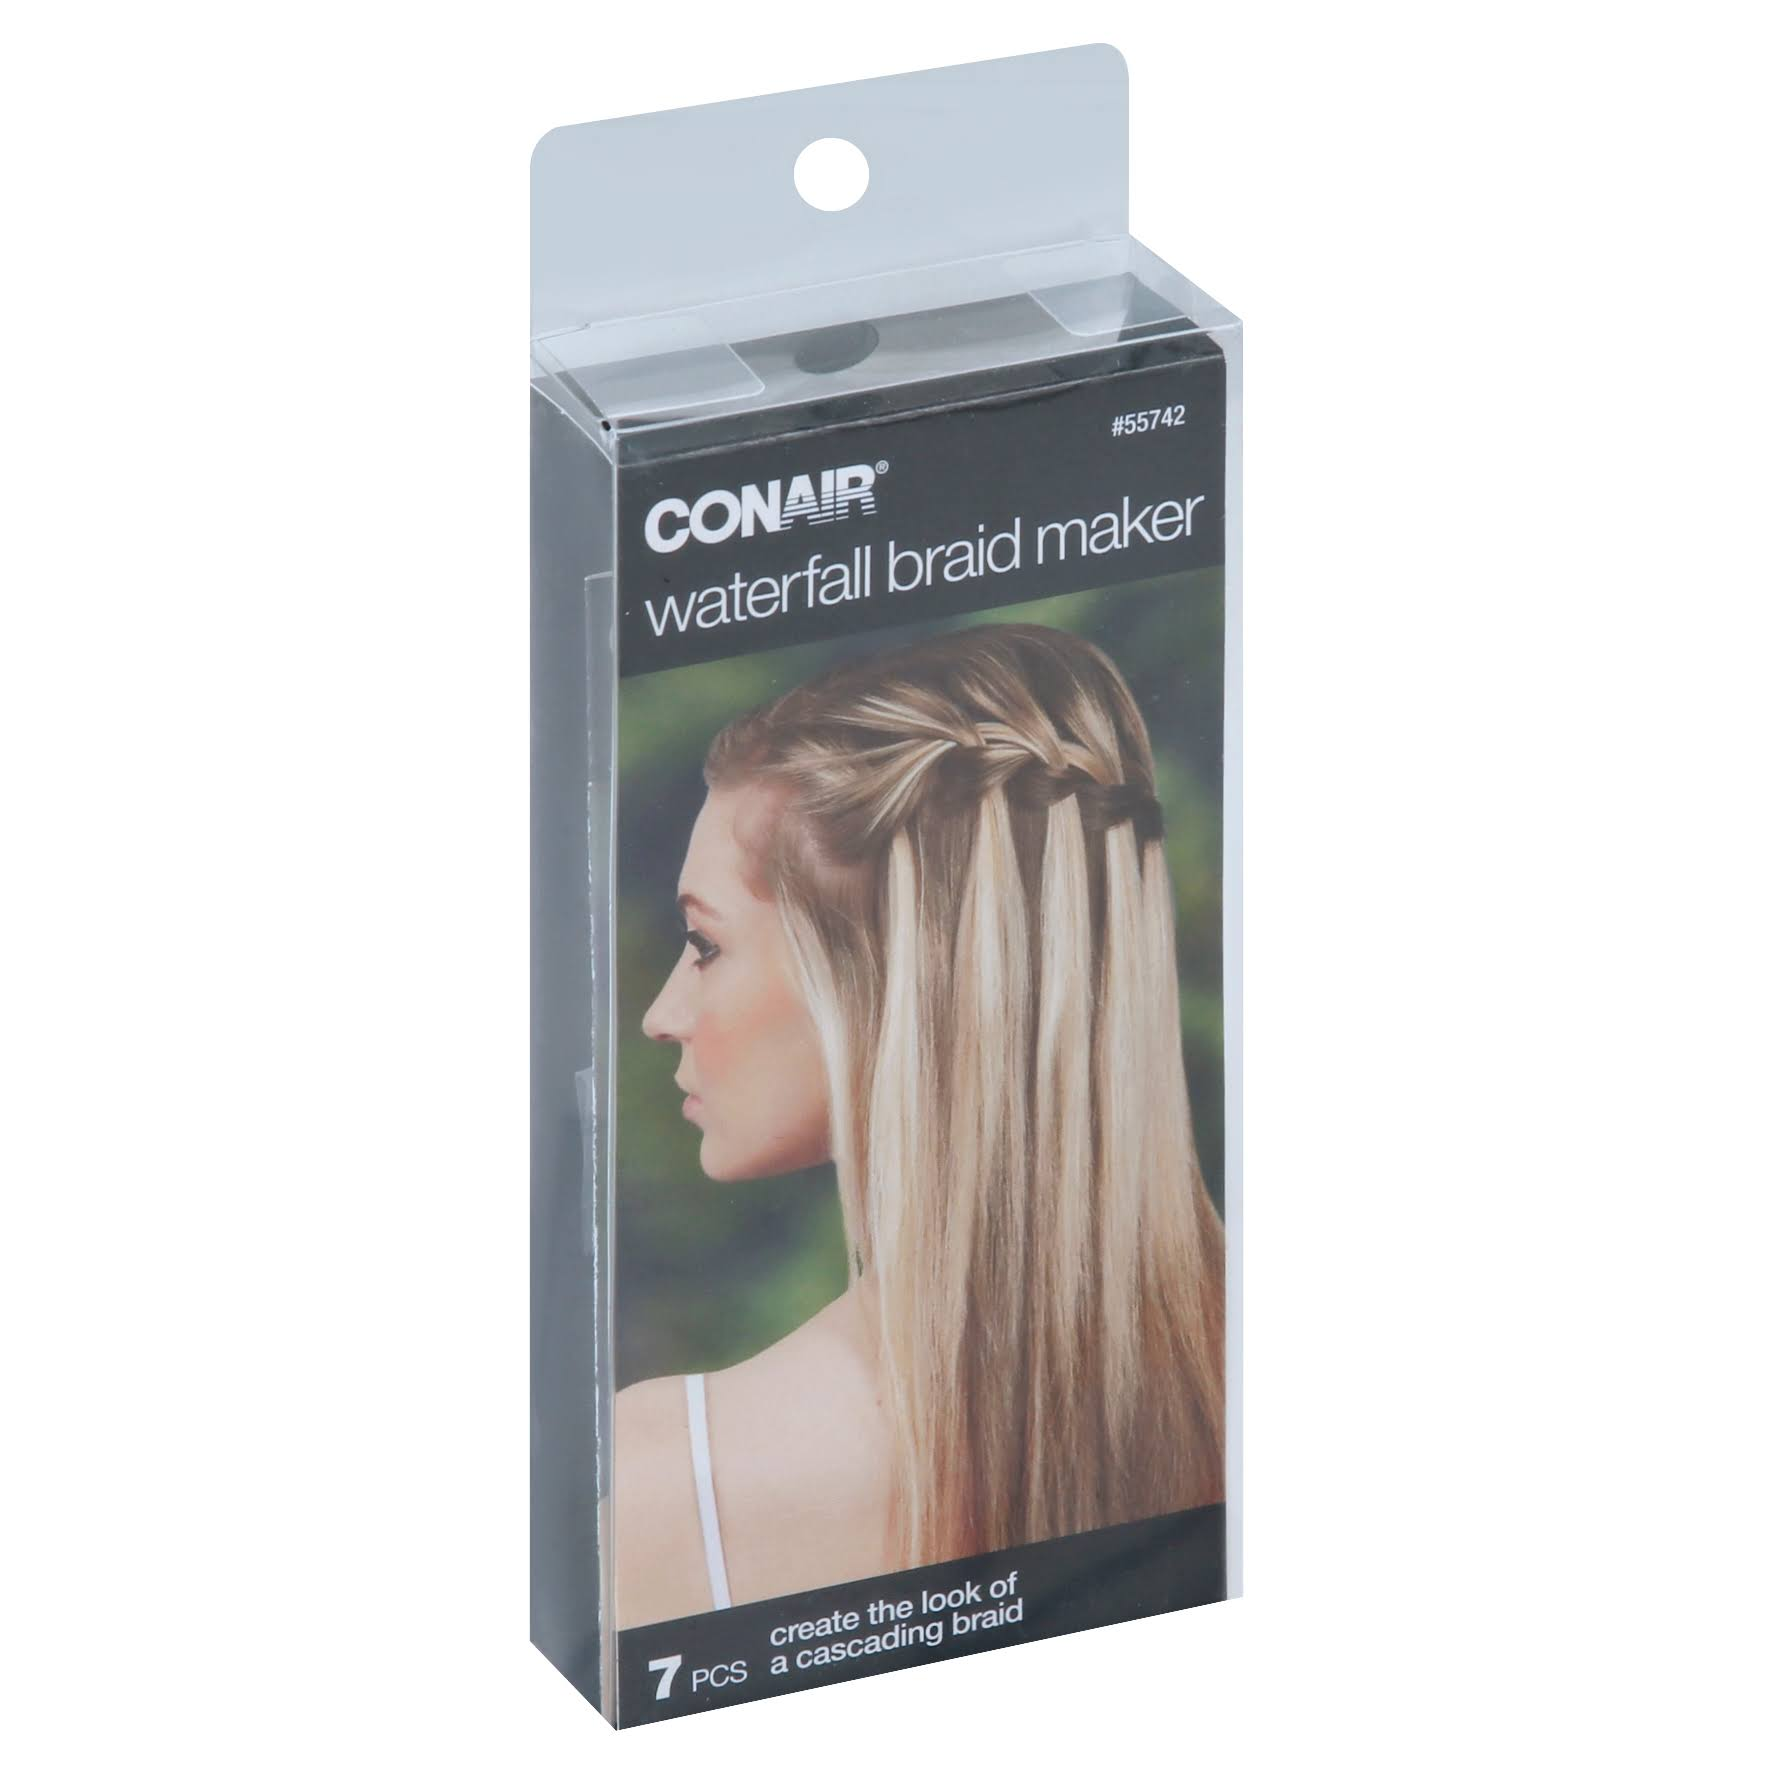 Conair Waterfall Braid Maker - 7pcs